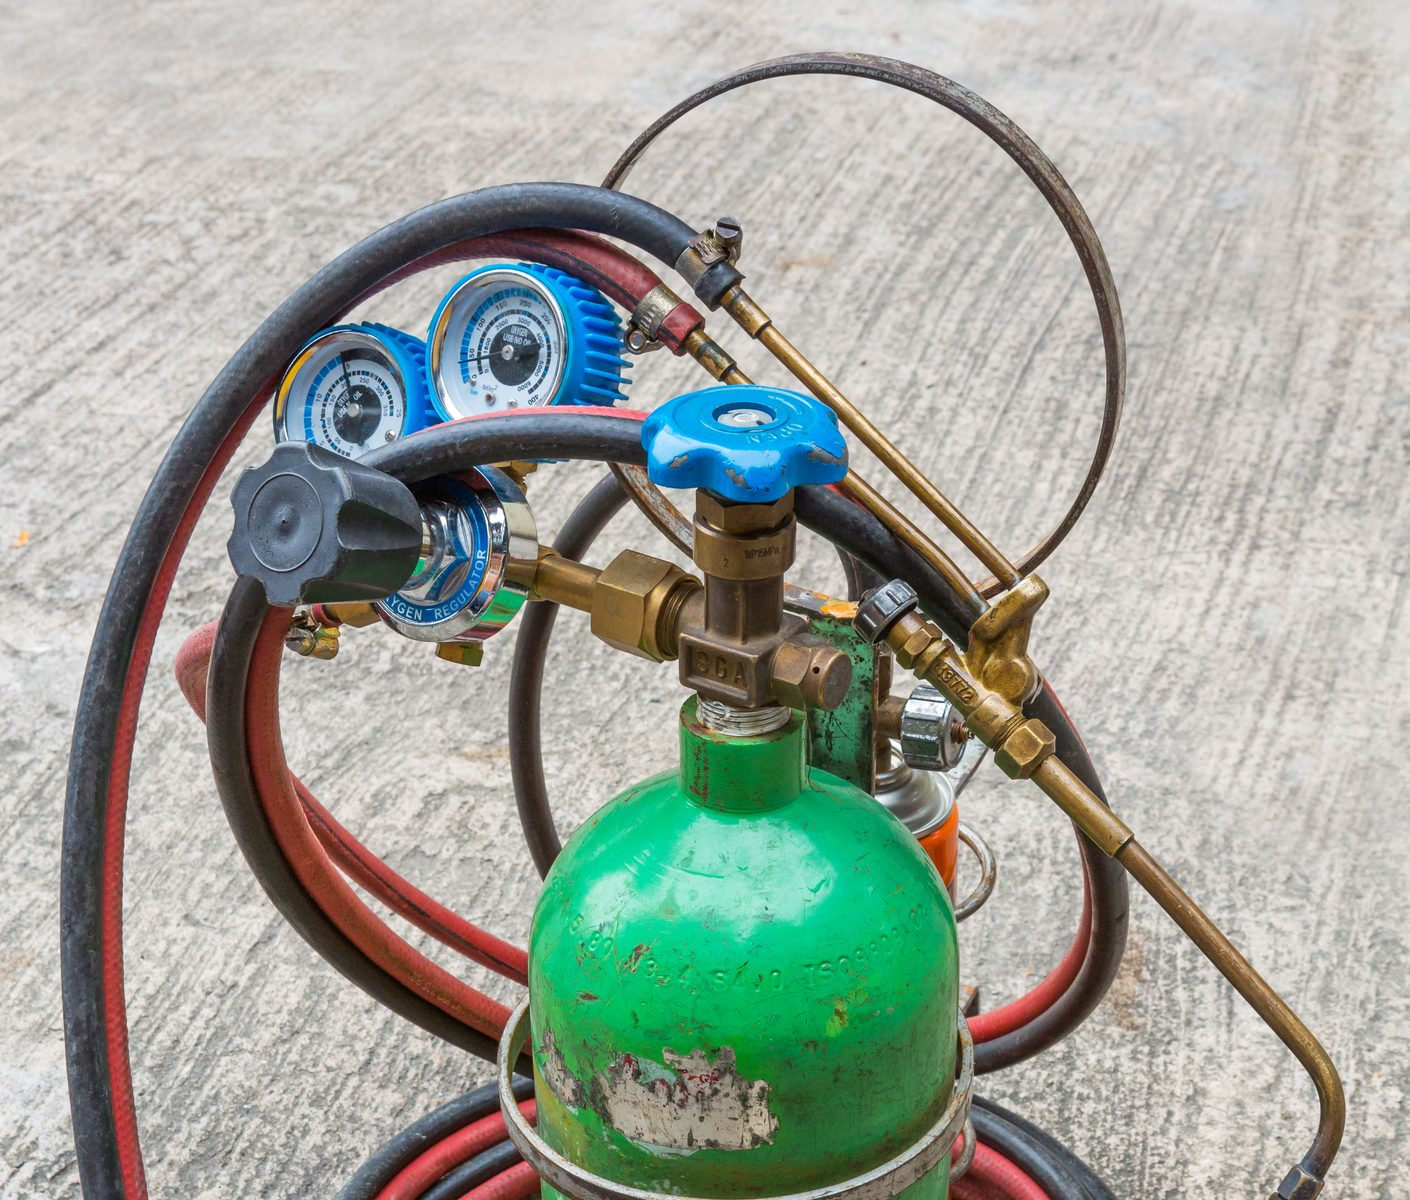 close up small gas welding kit on grunge concrete floor